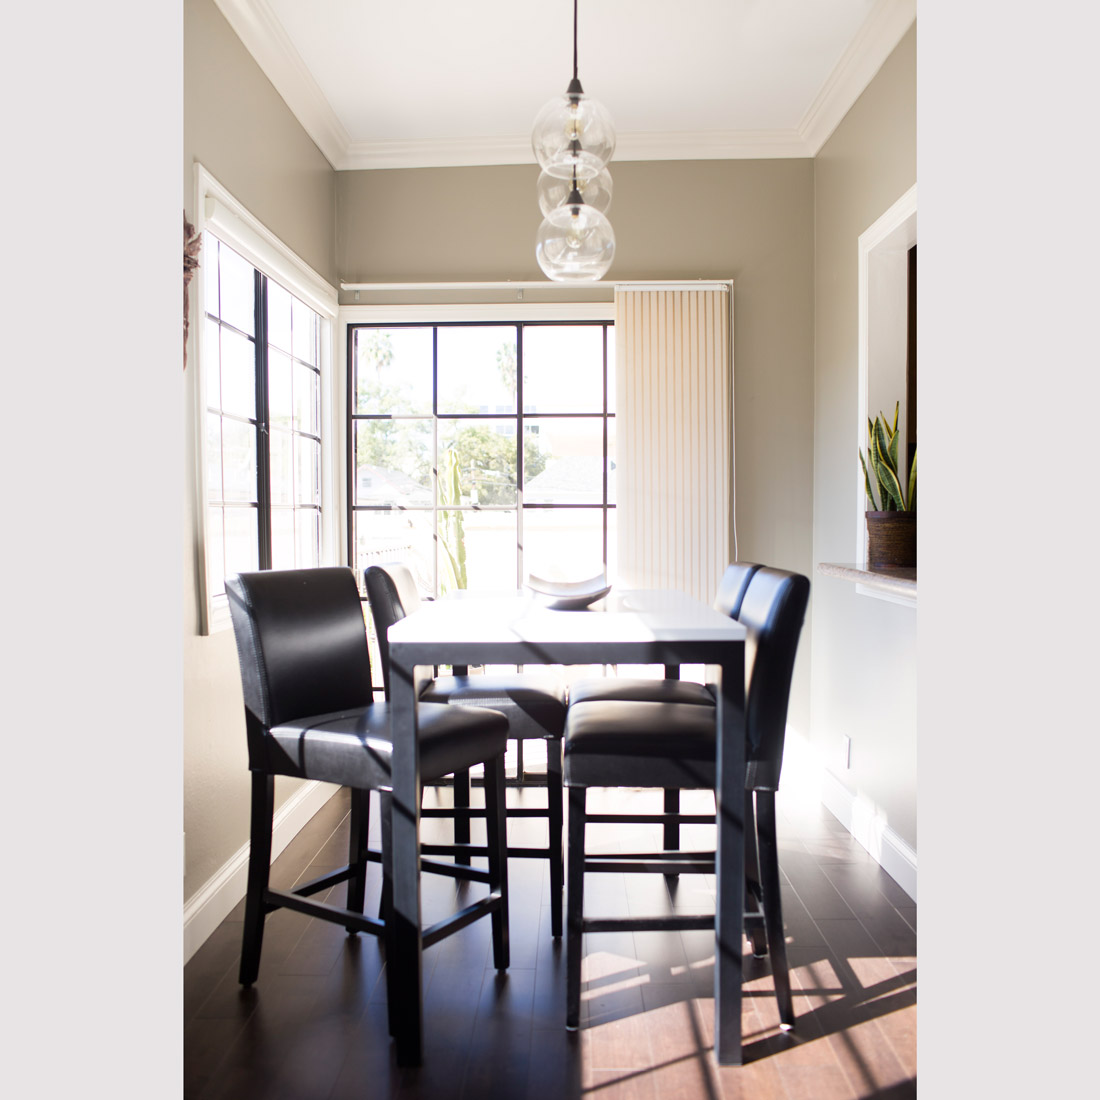 high dining table in white and black contrast and black leather counter height stools with globe pendant light and kitchen pass through design by sara bates interior design